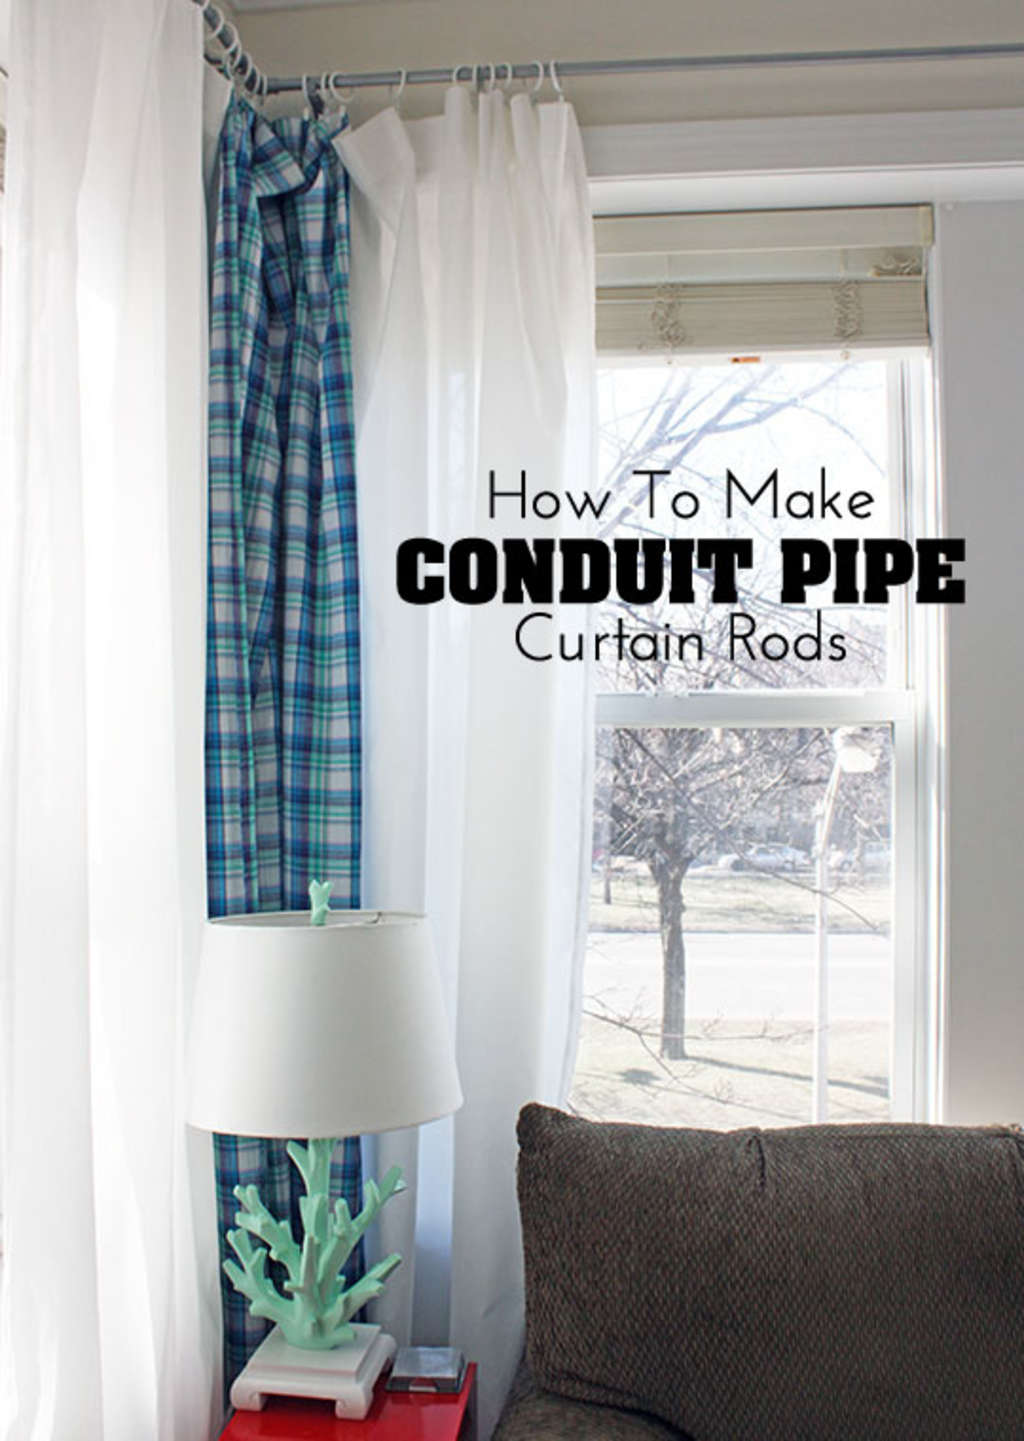 Diy Decor Project How To Make Conduit Pipe Curtain Rods Apartment Electrical Wiring Therapy